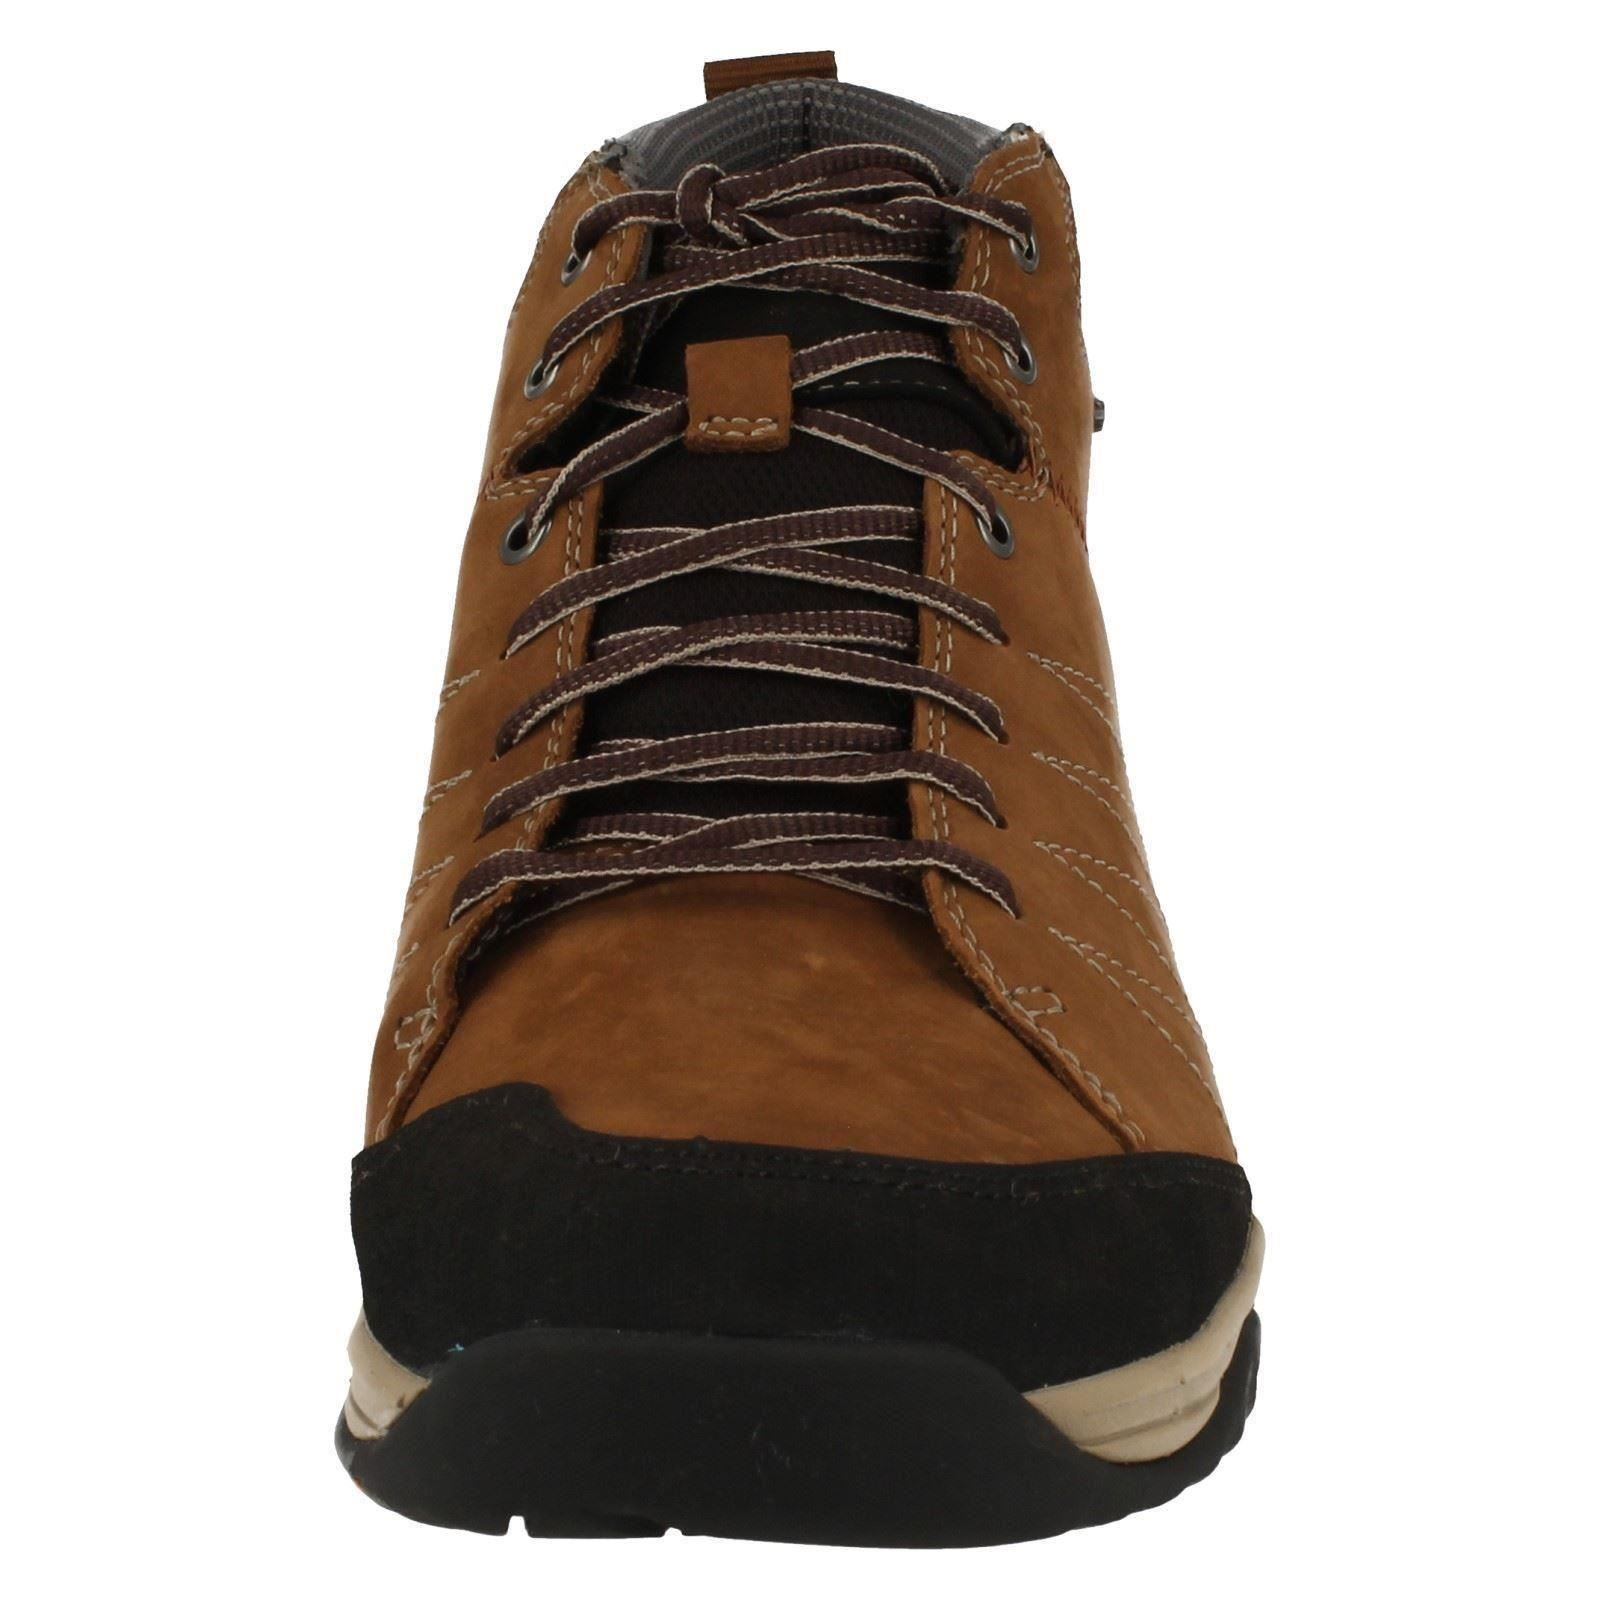 Men's Clarks Lace Up Gore-Tex Ankle Stiefel The Style - Baystoneup GTX